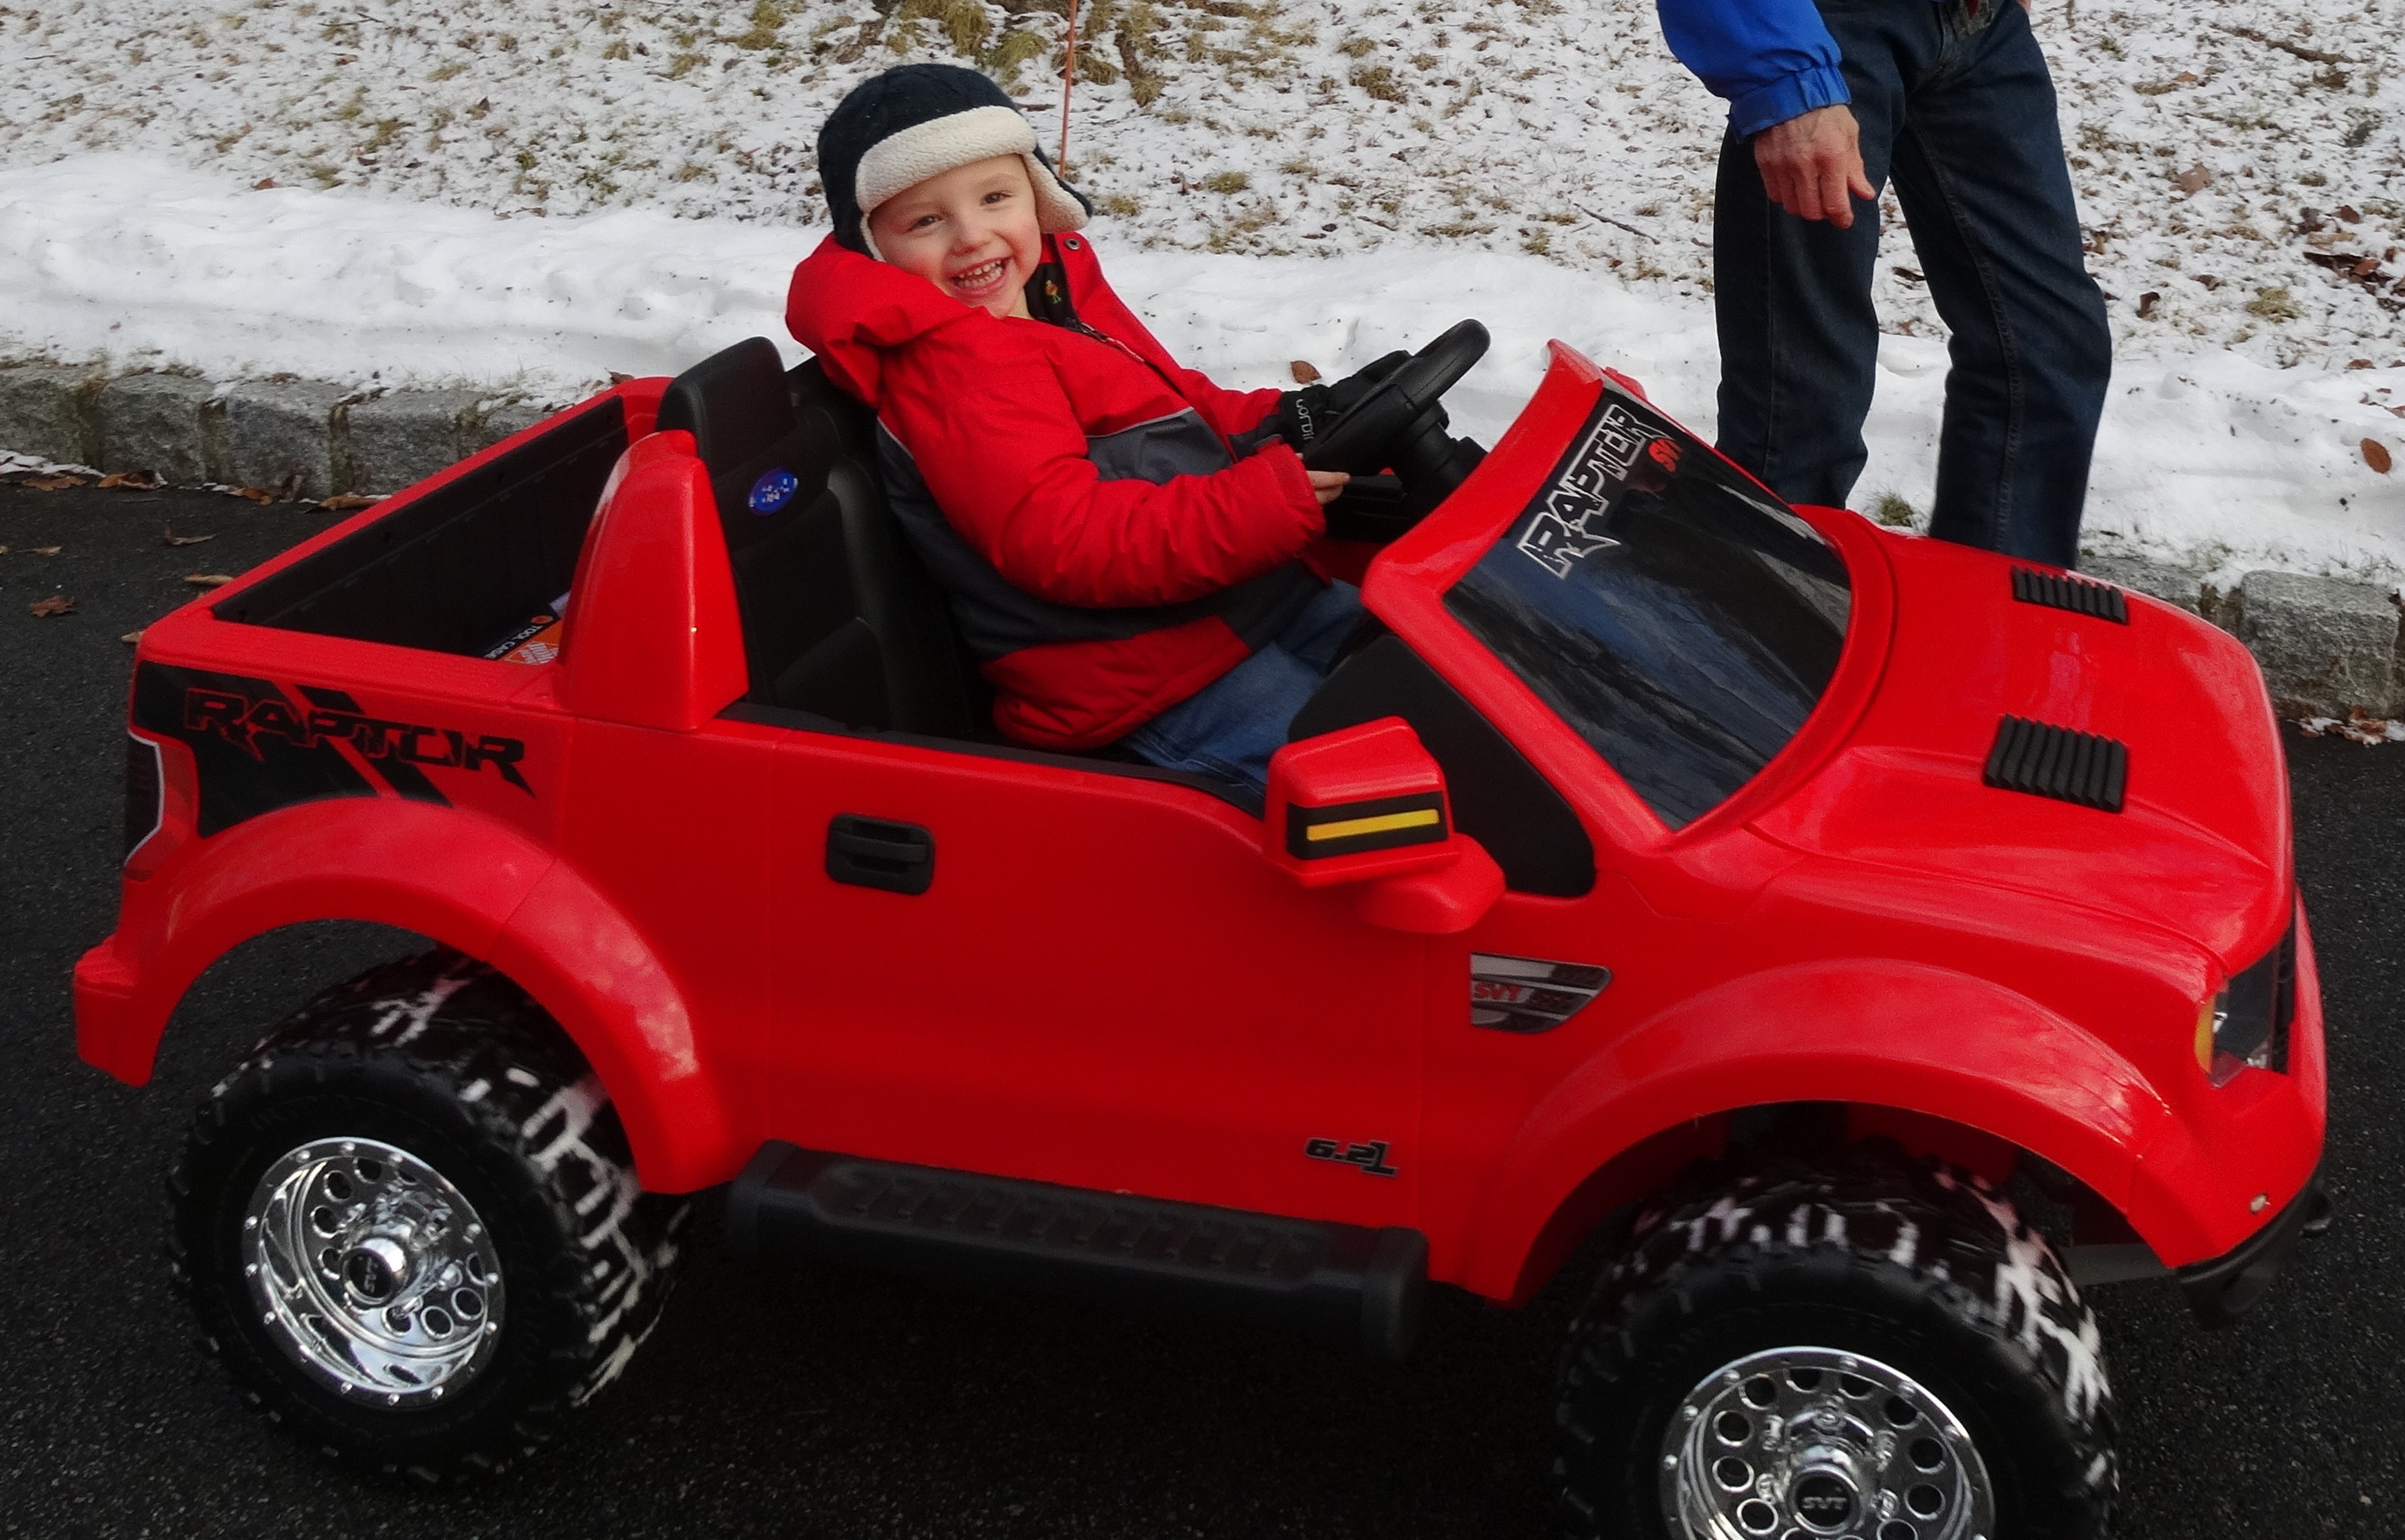 Ford F150 Raptor Reviews Ford F150 Raptor Price Ford F150 Raptor Parts  Fisher-Price_Power_Wheels_Red_F150_Raptor_12-Volt_Battery-Powered_Ride